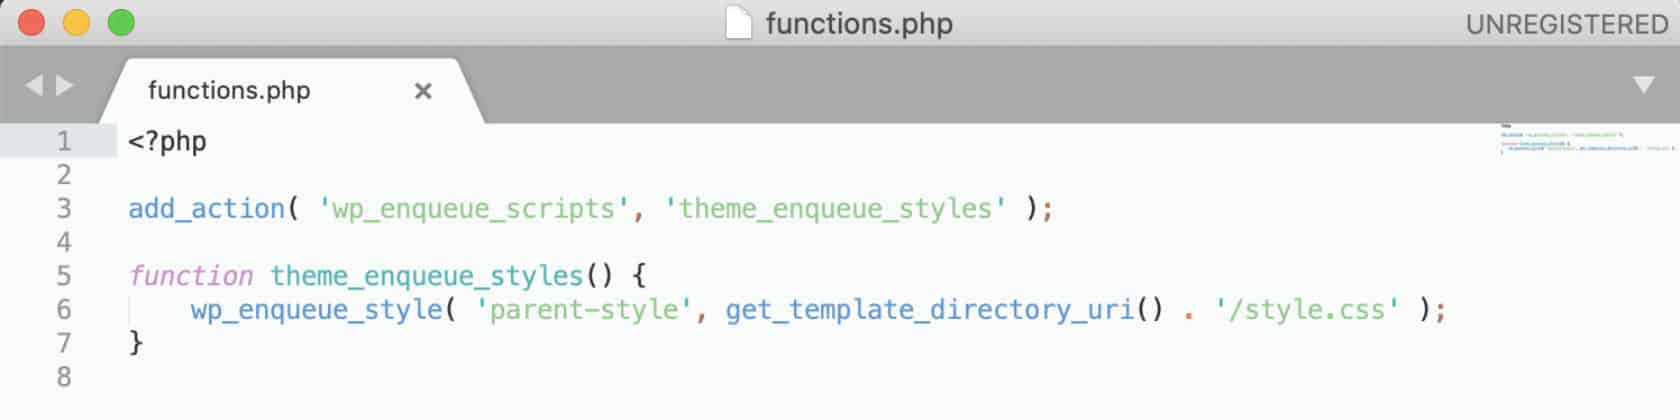 Fichier functions.php